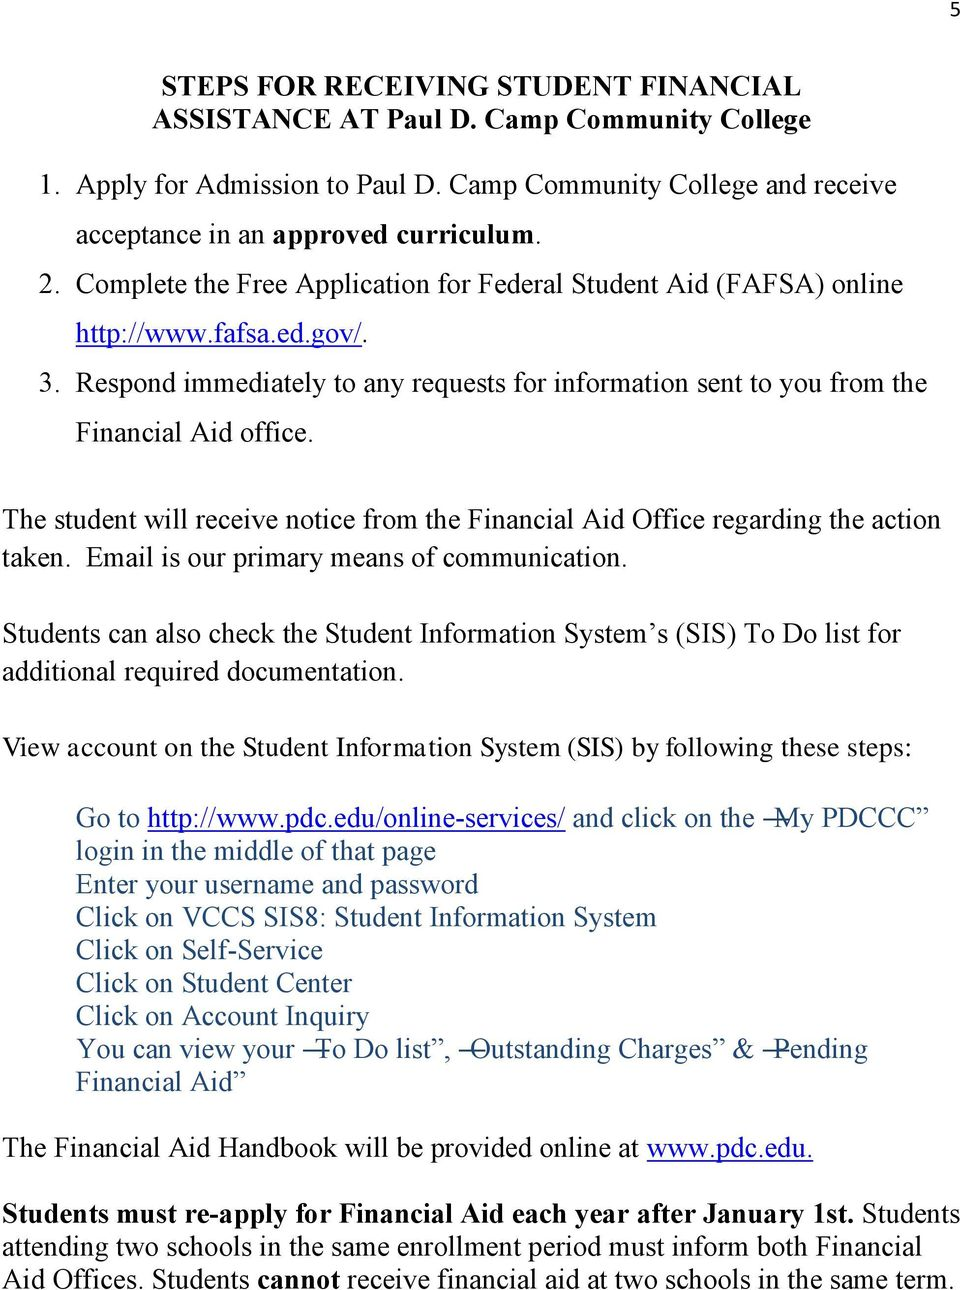 The student will receive notice from the Financial Aid Office regarding the action taken. Email is our primary means of communication.